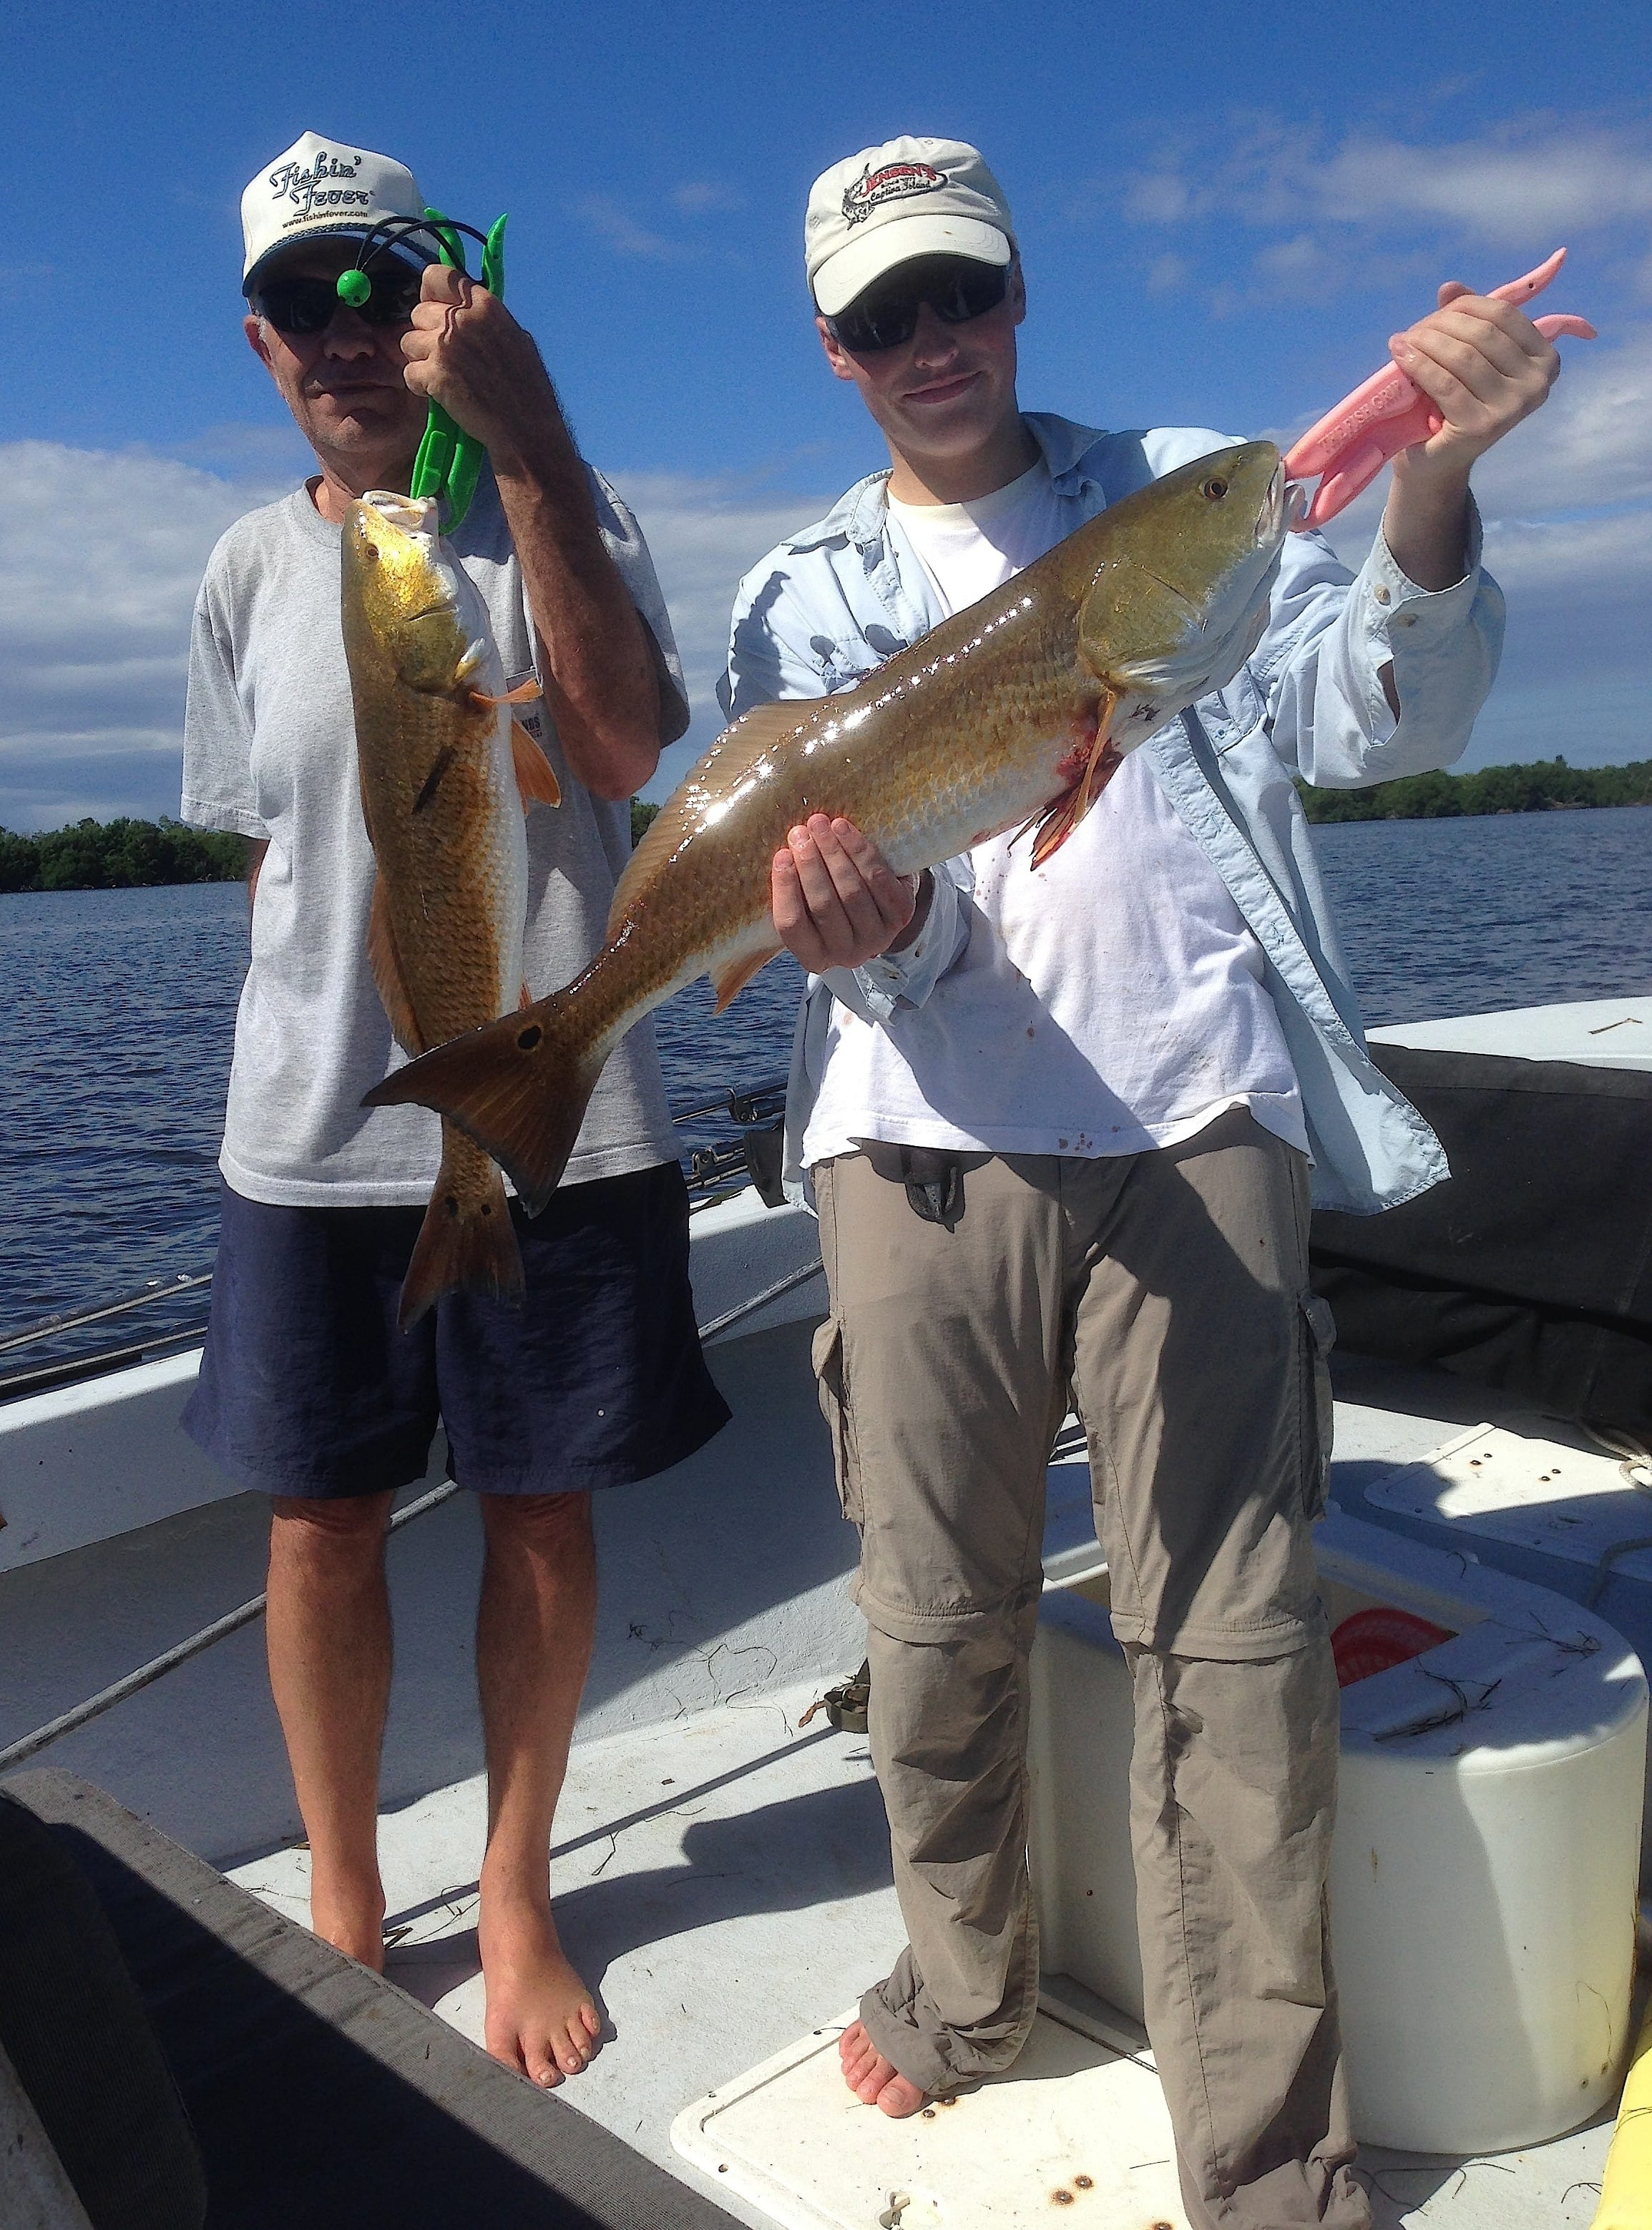 Fort myers fishing report 8 18 14 floyd charlie for Fishing charters fort myers florida